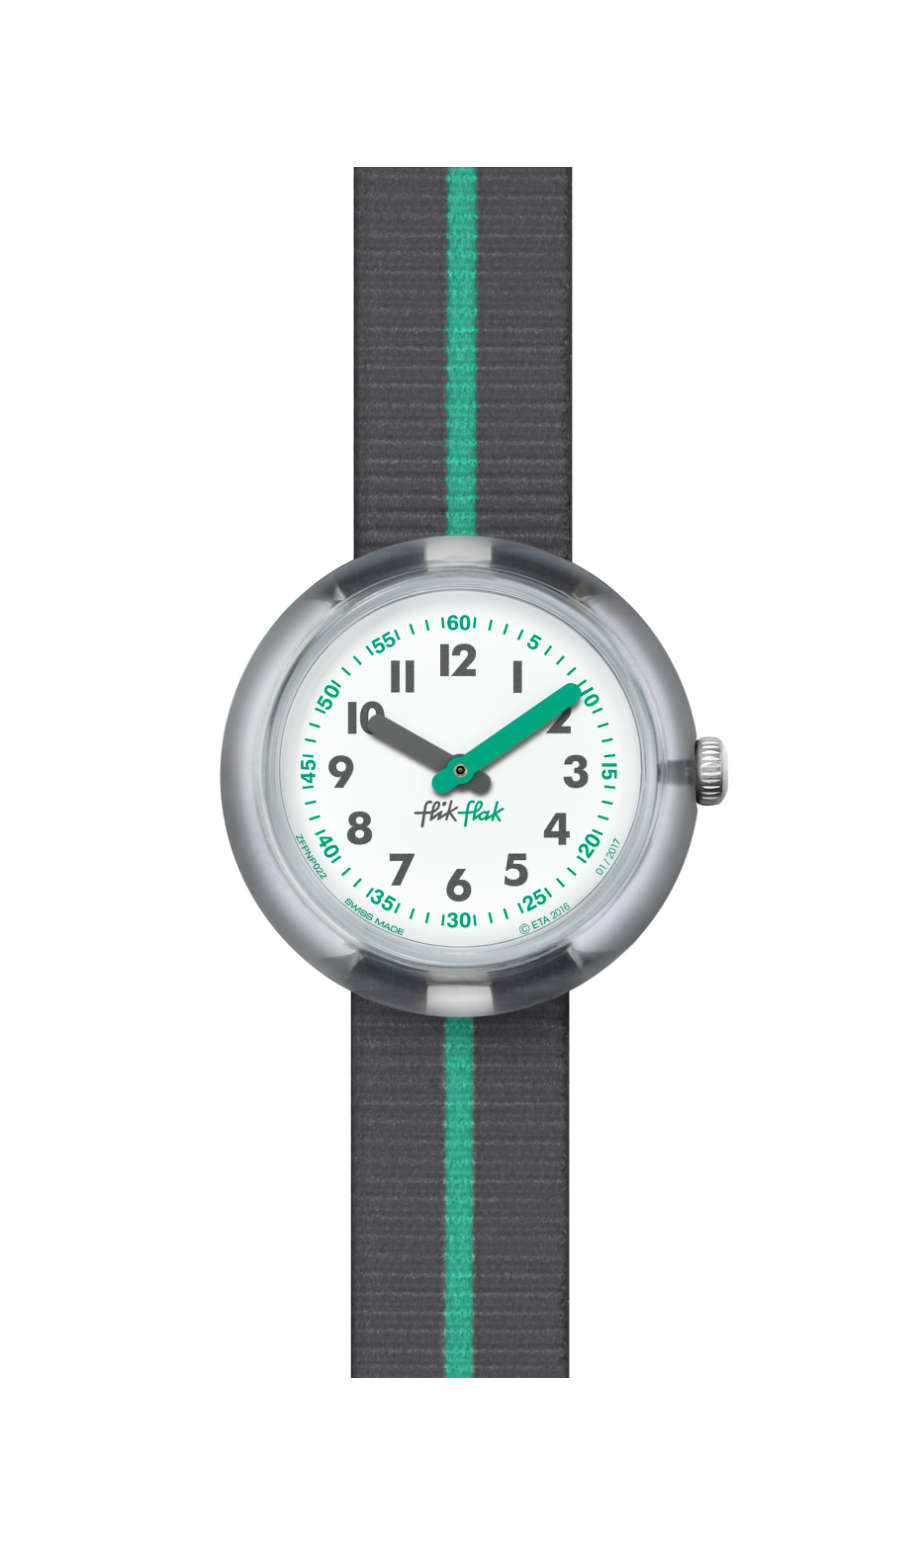 Swatch - GREEN BAND - 1